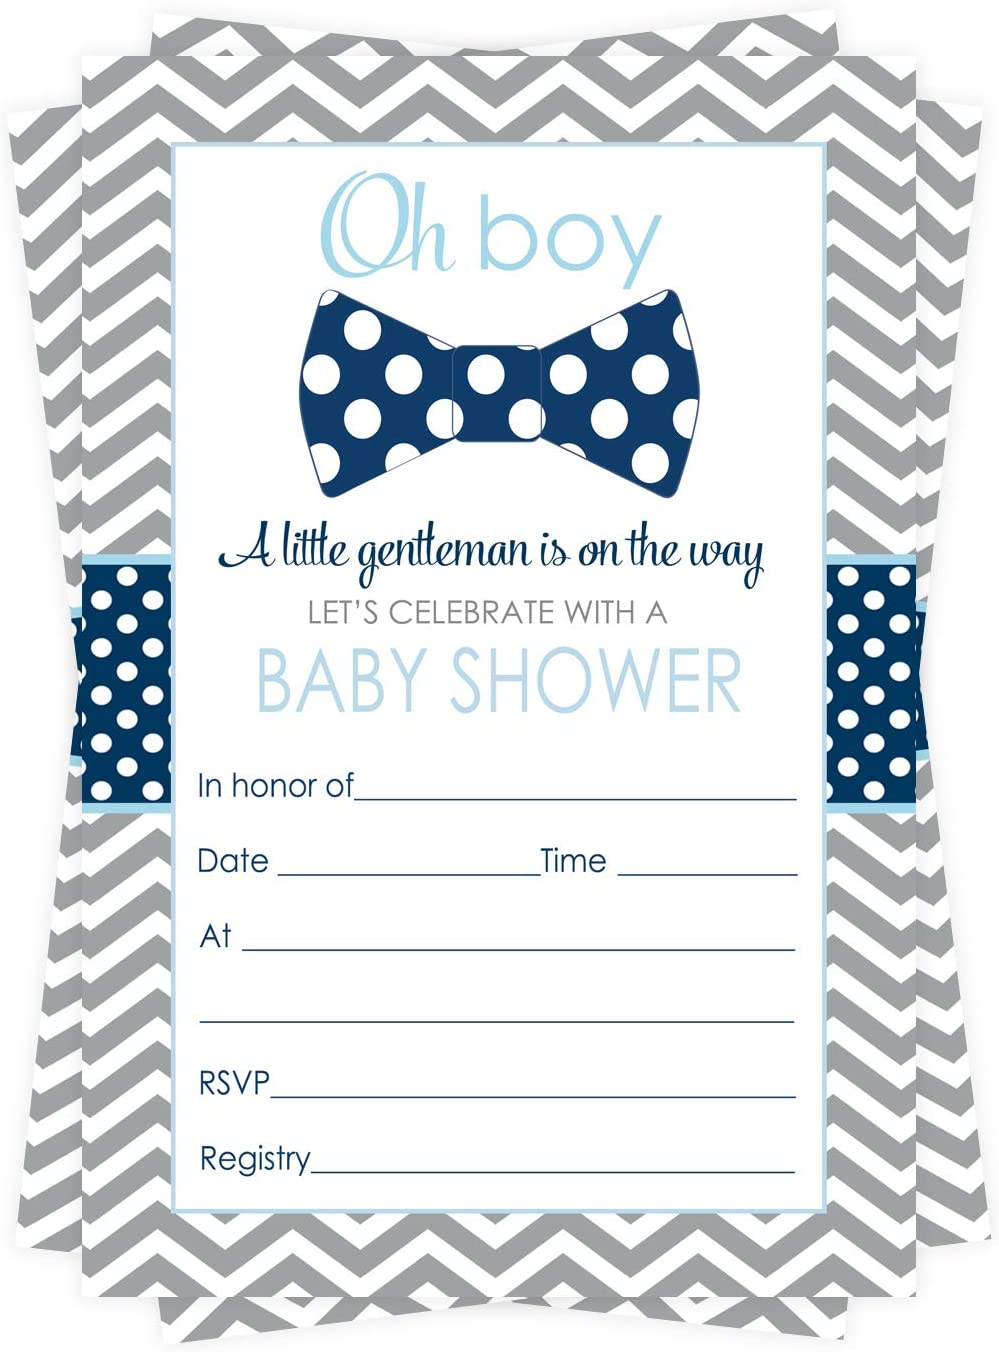 Amazon.com: Bow Tie Baby Shower Invitations (15 Guests) Little Man Party  Supplies – Oh Boy Sprinkle – Grey and Blue – Fill in Blank Style Invite  Cards and Envelope Set DIY: Health